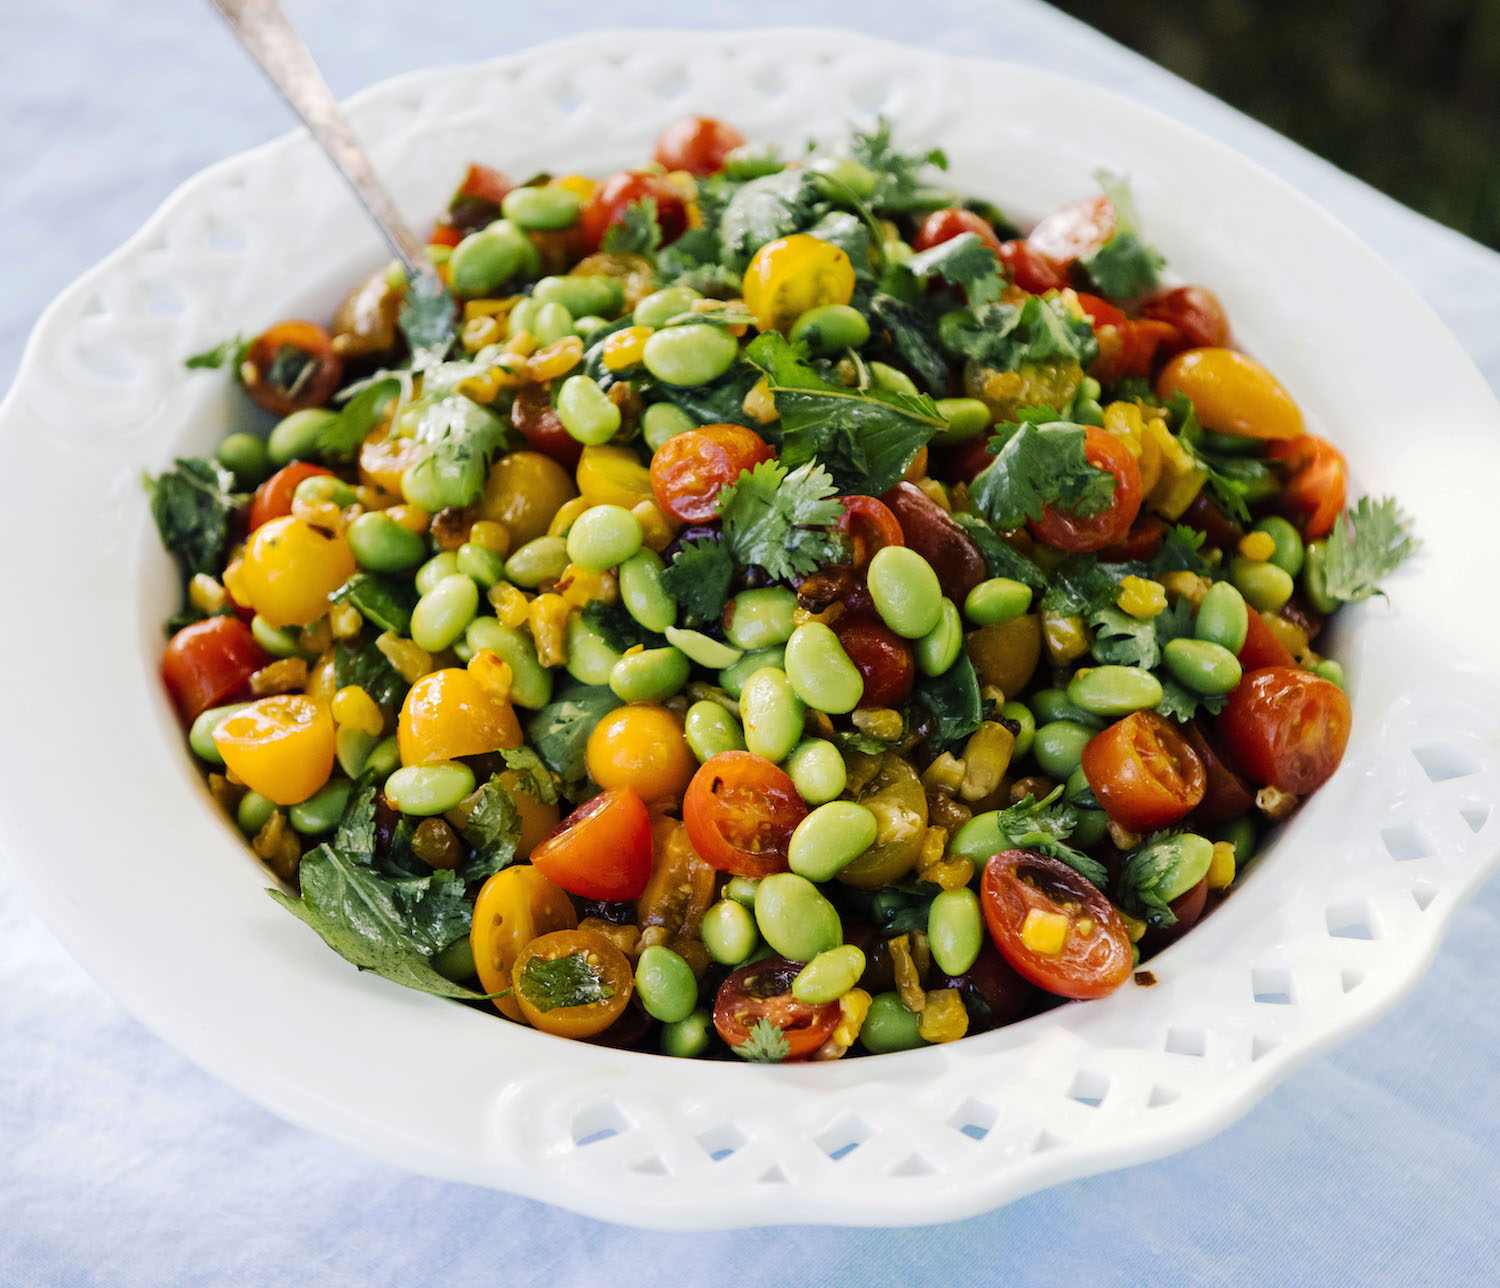 Corn Salad With Soybeans, Cherry Tomatoes, and Basil image